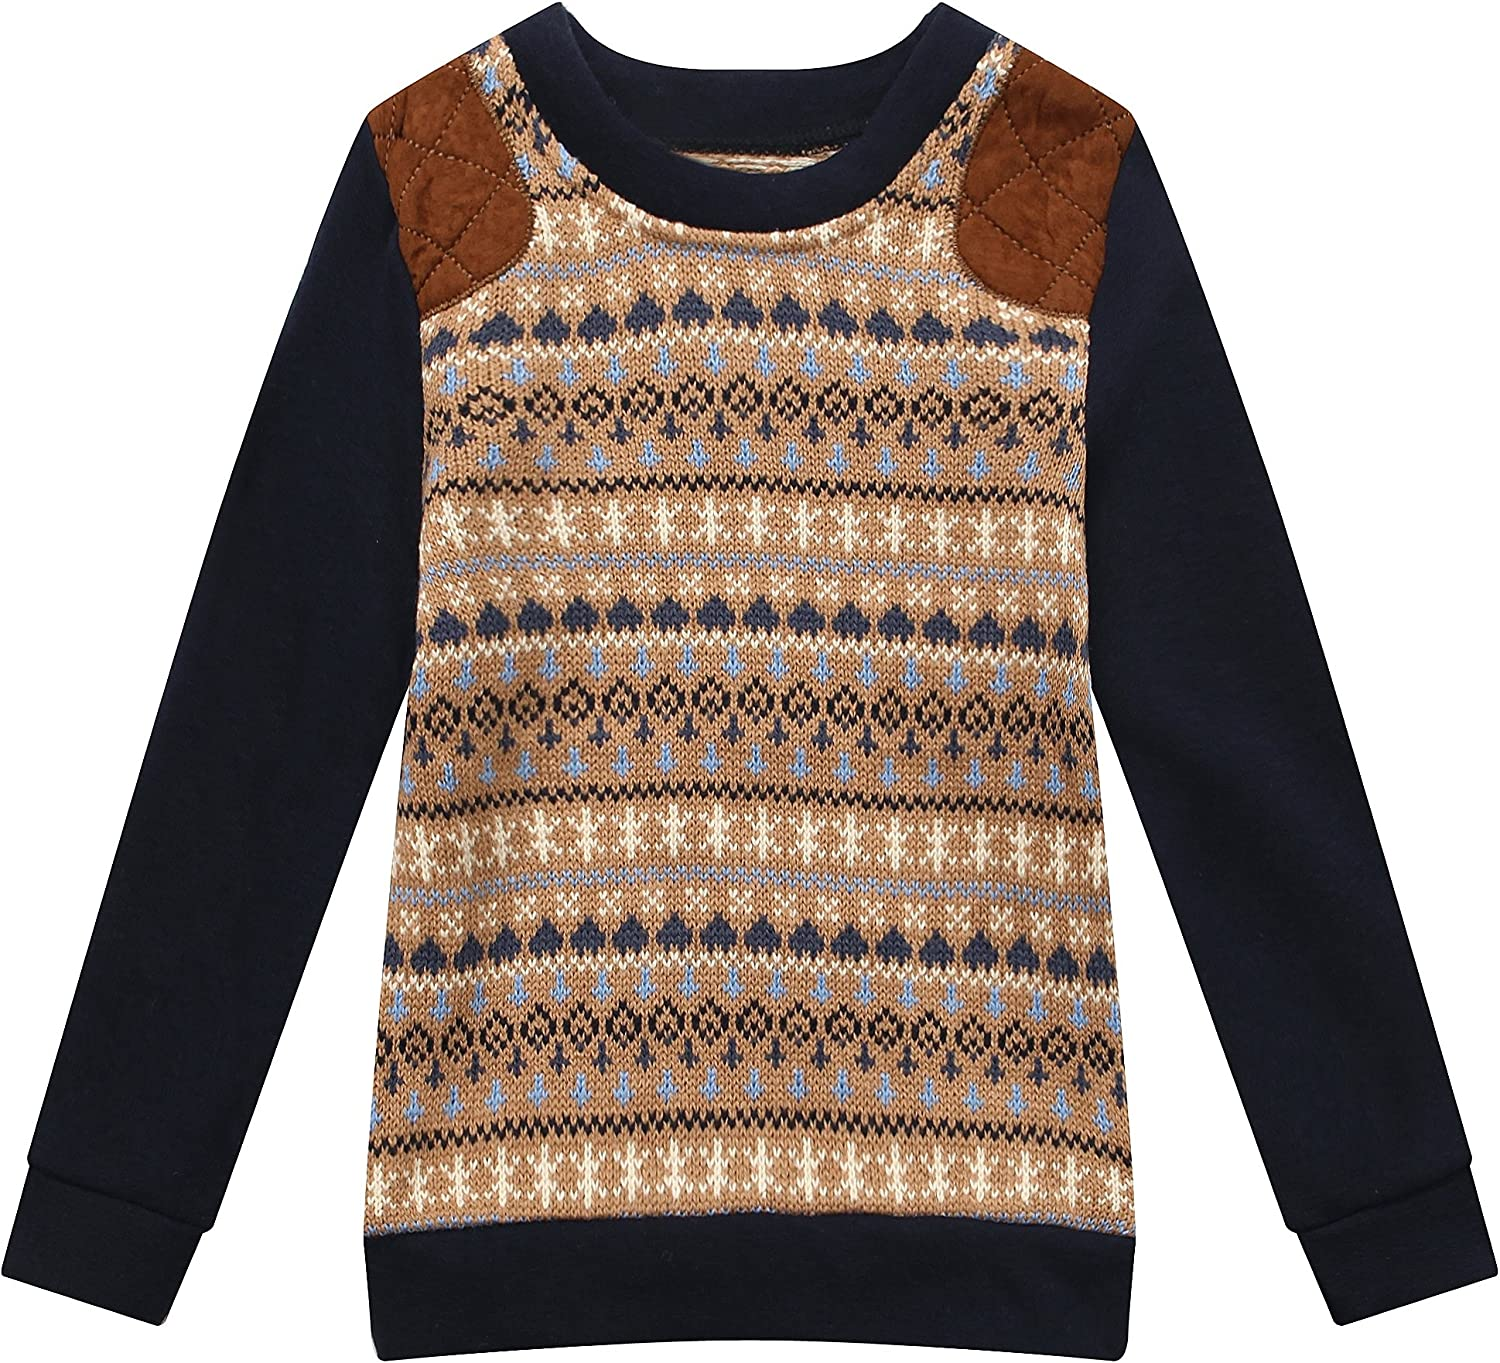 Richie House Boy's Sweater with Knit Sleeve RH1427